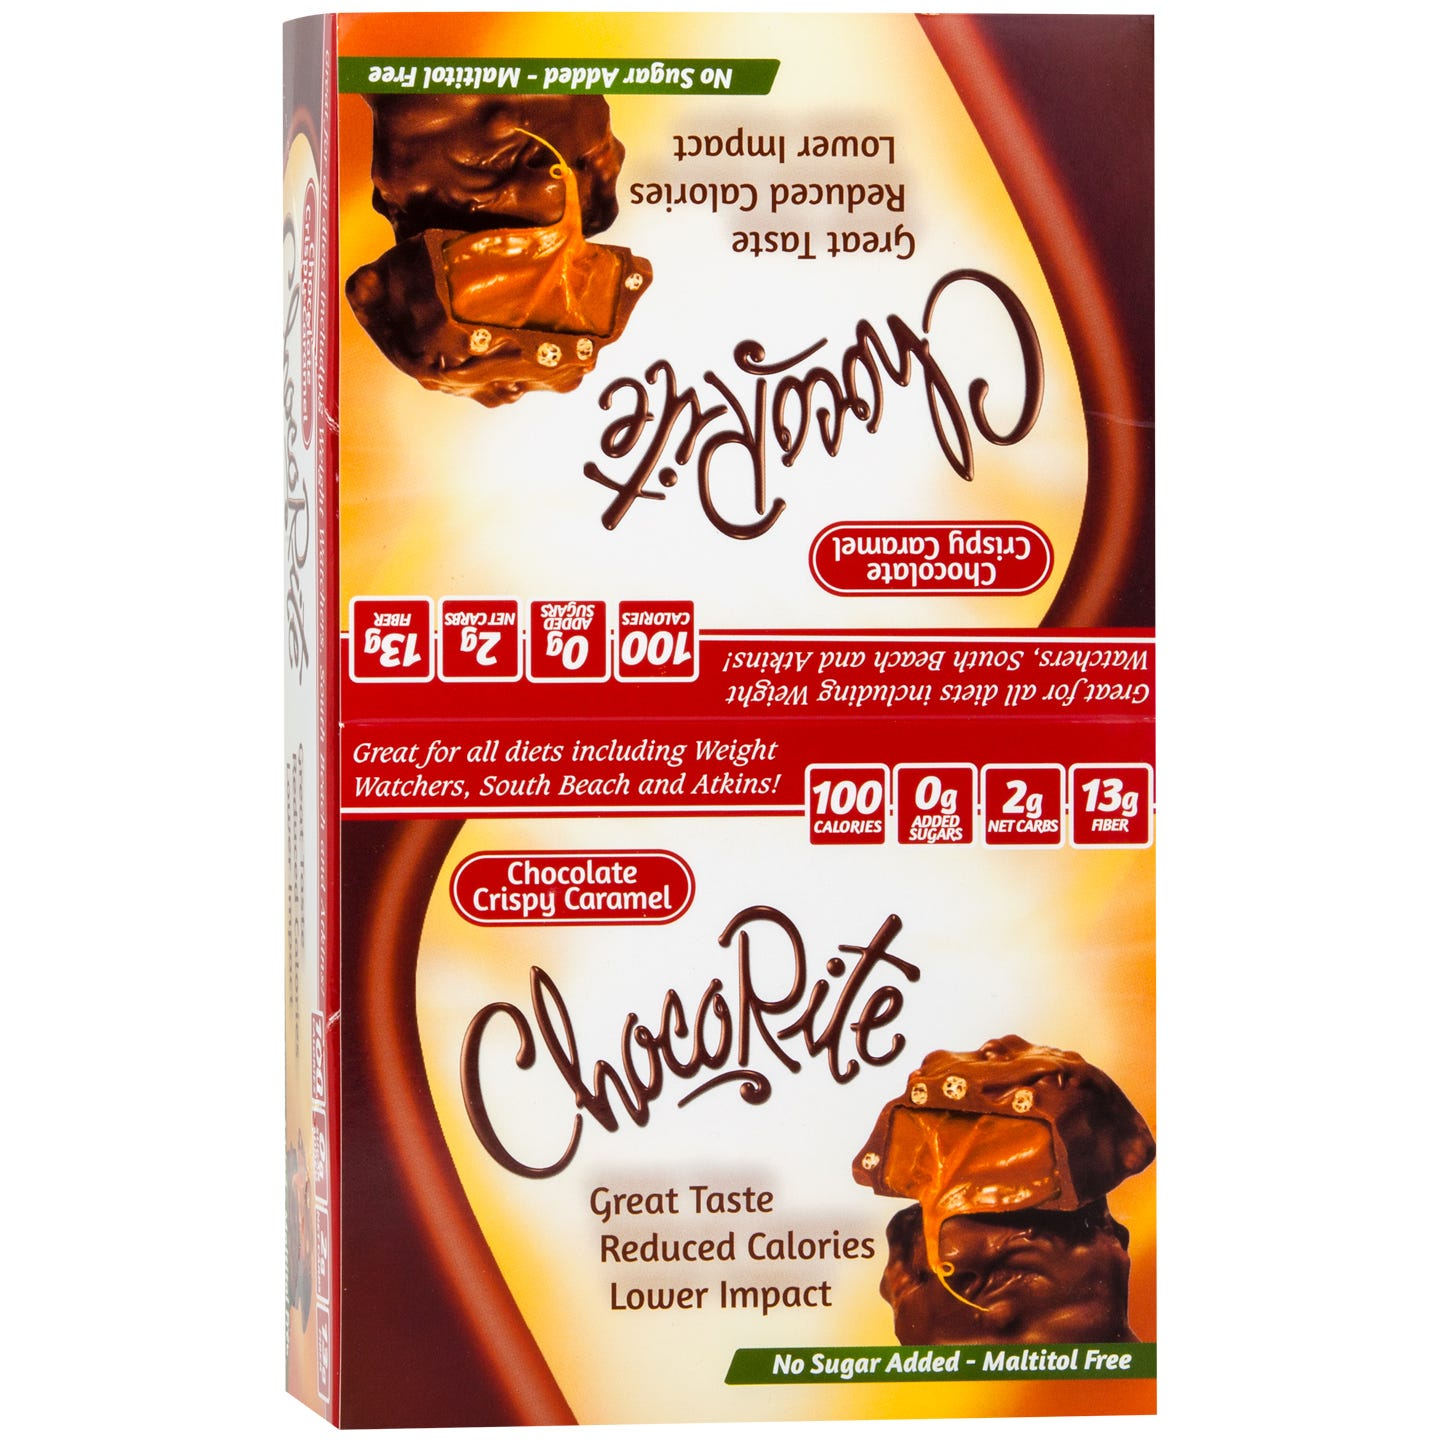 ChocoRite Chocolate Bars Crispy Caramel (16 ct) - HealthSmart Foods - Rapid Diet Weight Loss Products Shop